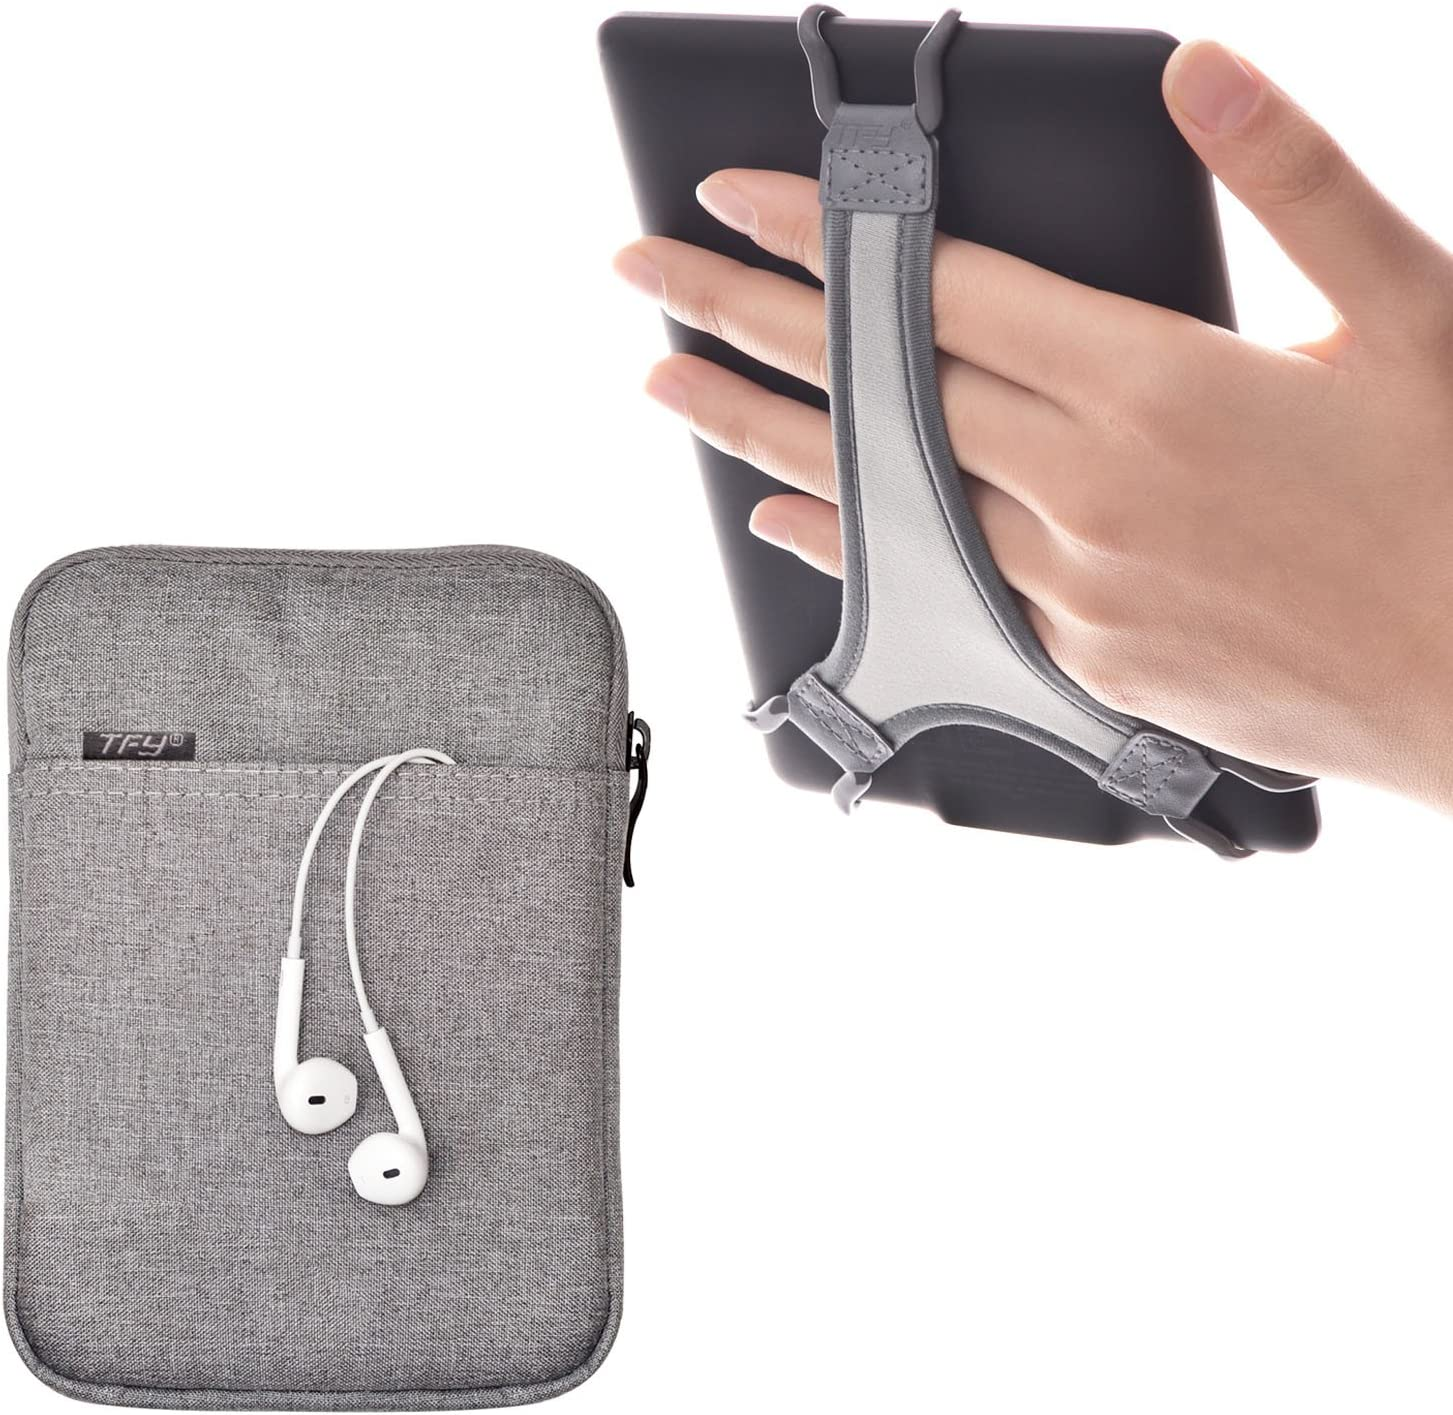 TFY E-Reader Protective Pouch Bag with Zip Closure, Plus Bonus Hand Strap Holder for 6 inch e-Readers - Kindle 6 inch / Paperwhite / Voyage / Oasis 6 Inch / Nook GlowLight Plus / Kobo Aura /Touch 2.0